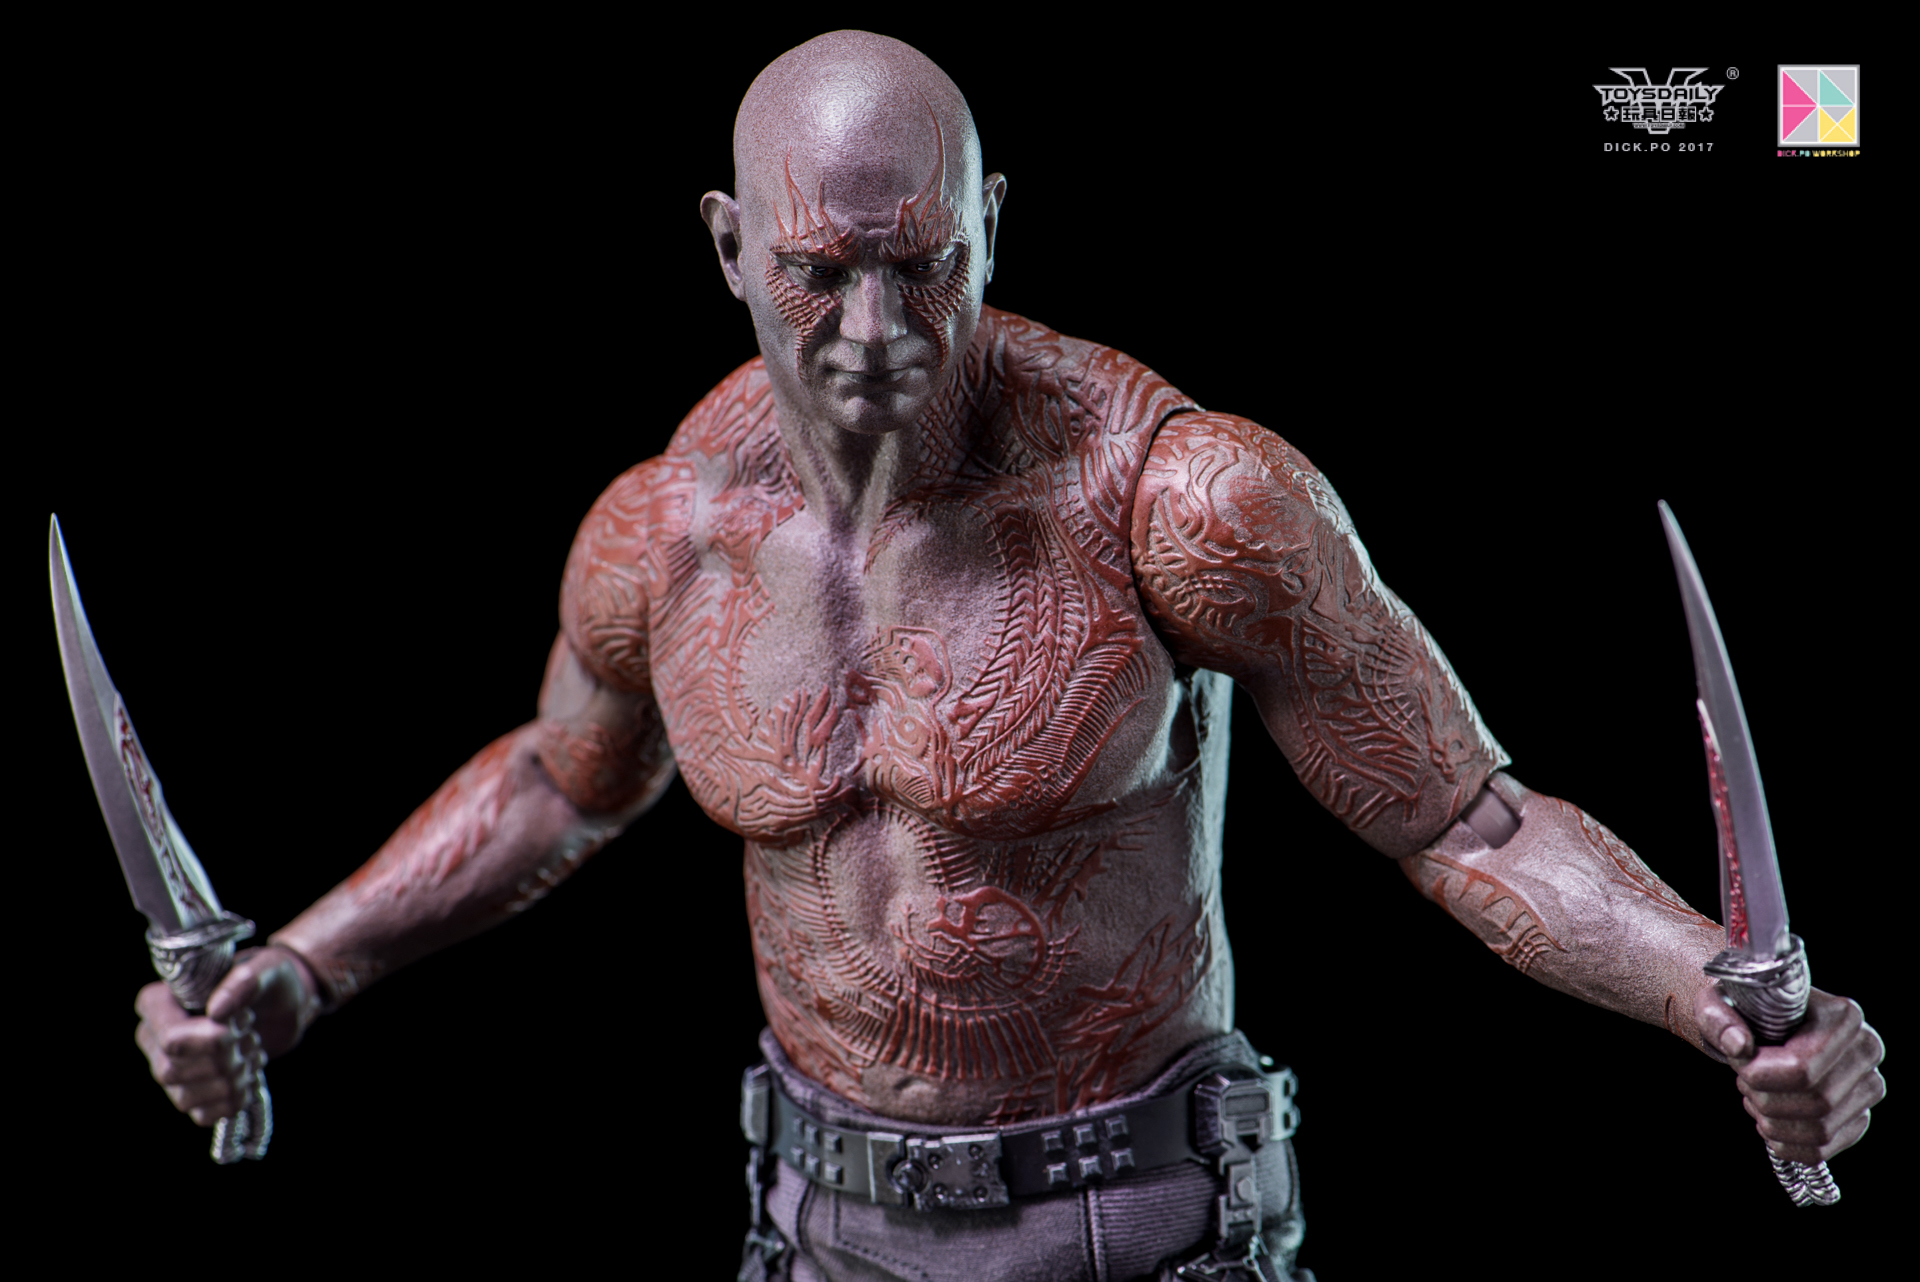 toysdaily_dick.po_Hottoys_DARX-38.jpg